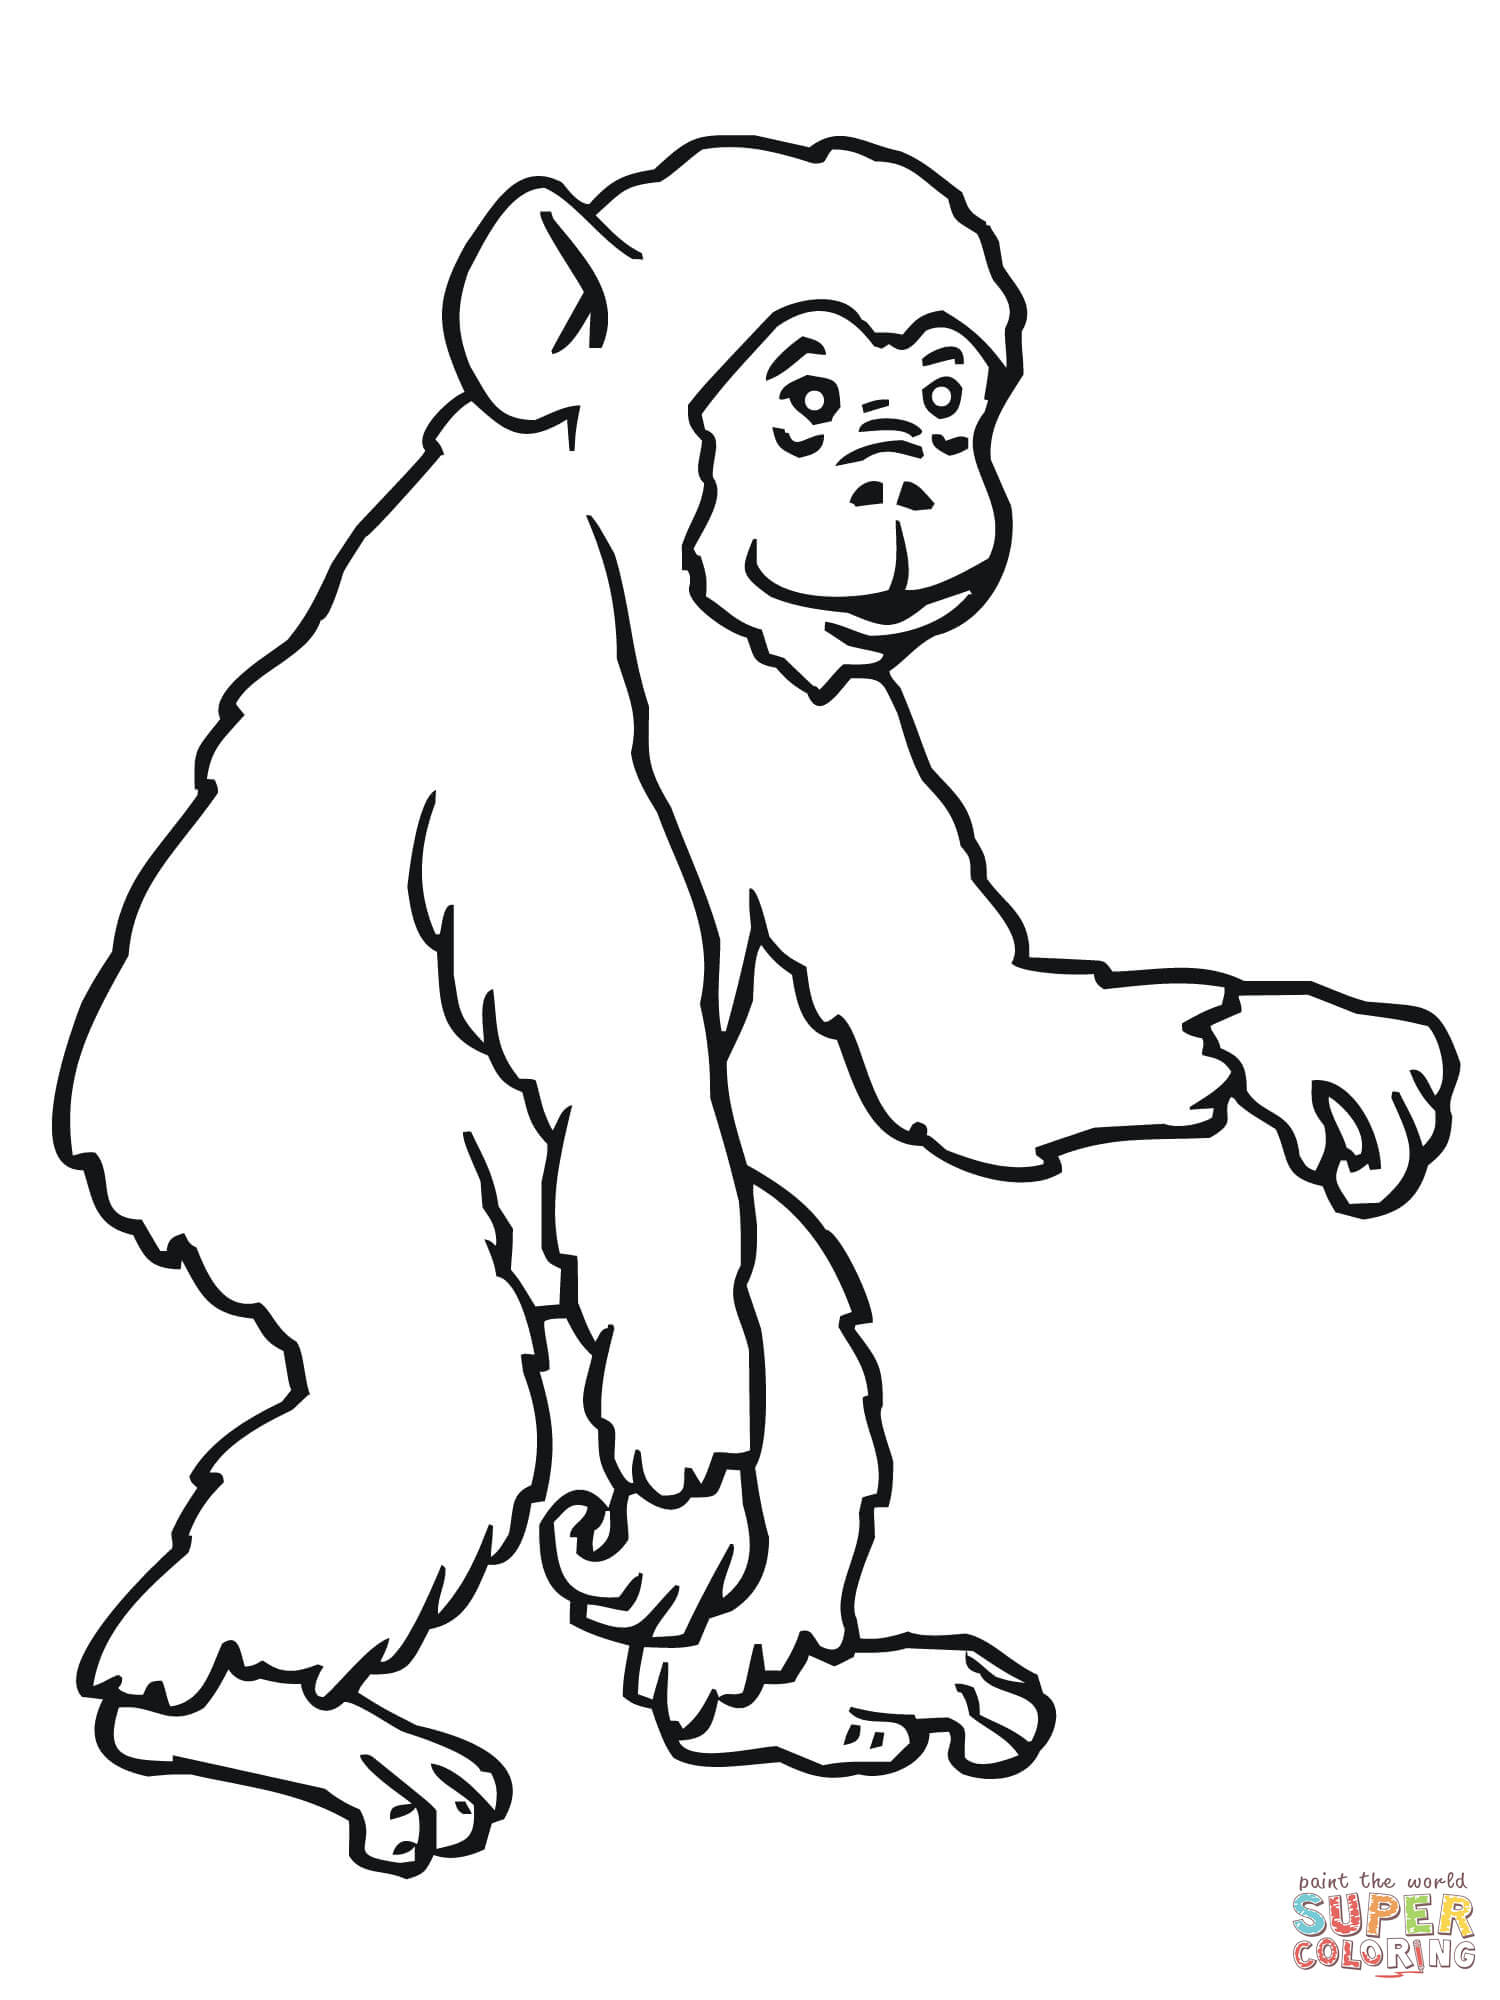 Bonobo clipart black and white Coloring Chimpanzee pages Pages Chimp